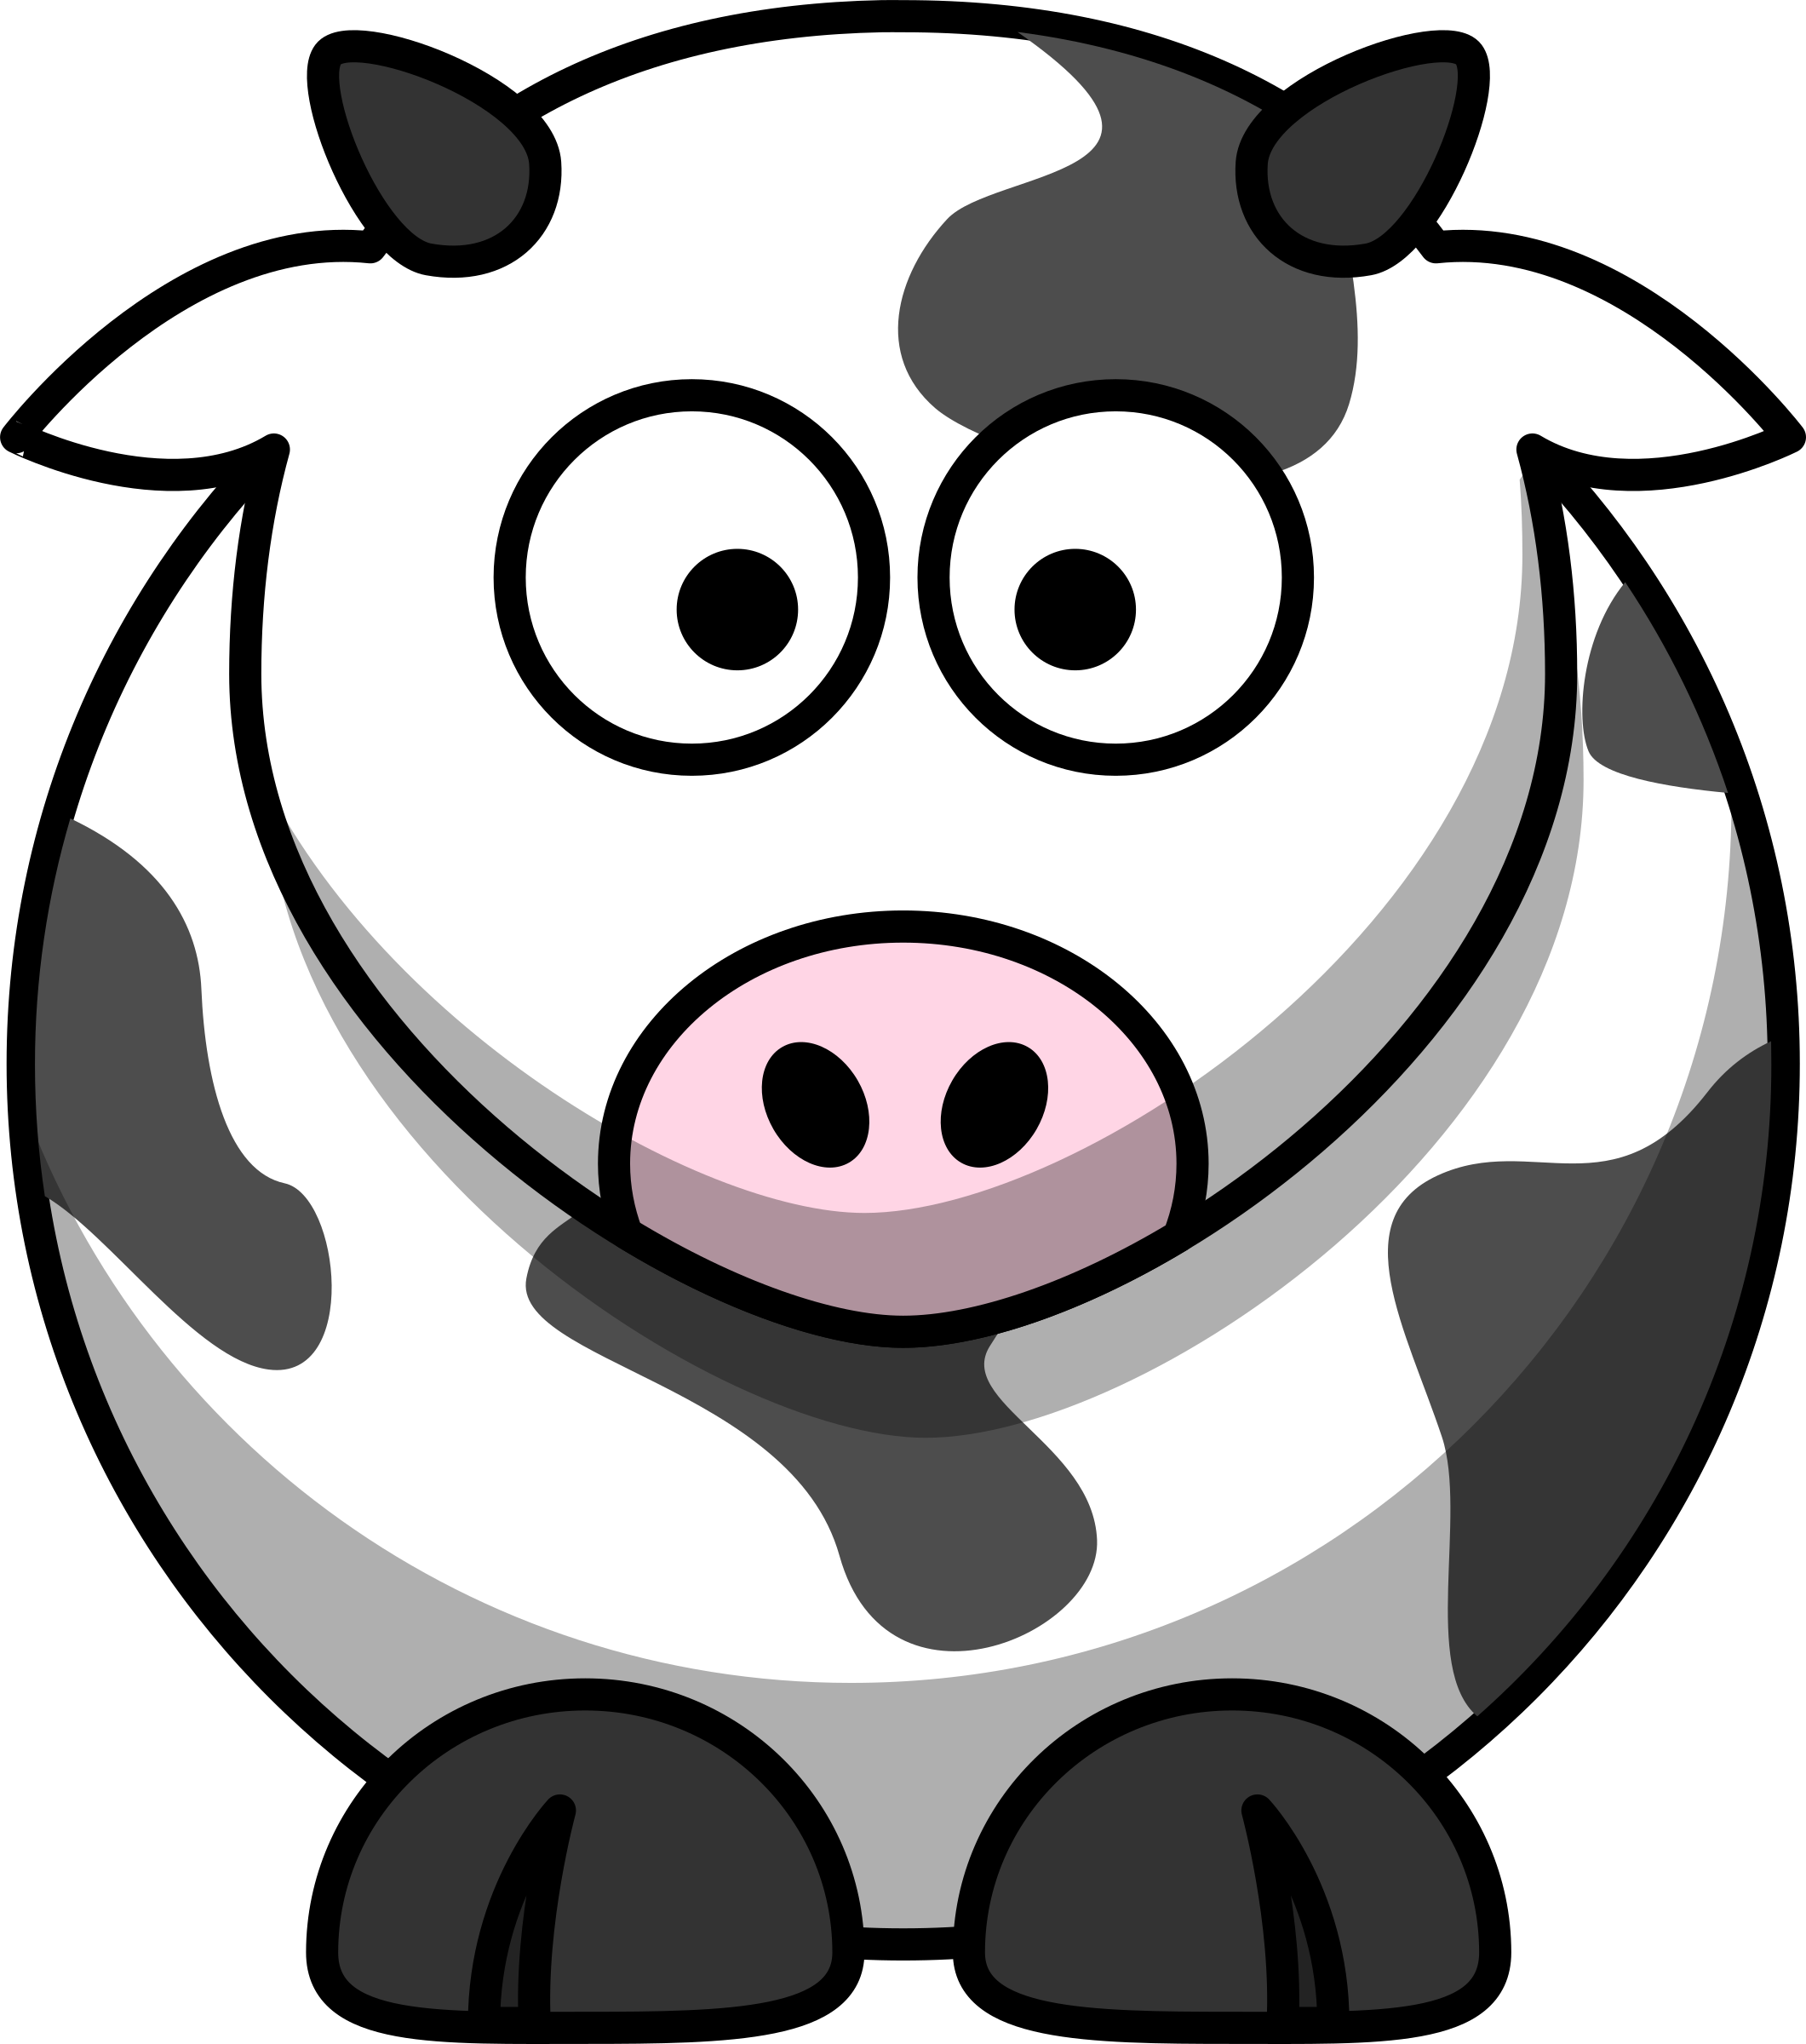 Cartoon Cow Png - animal-cow-free-PNG-transparent-background-images-free-download ...